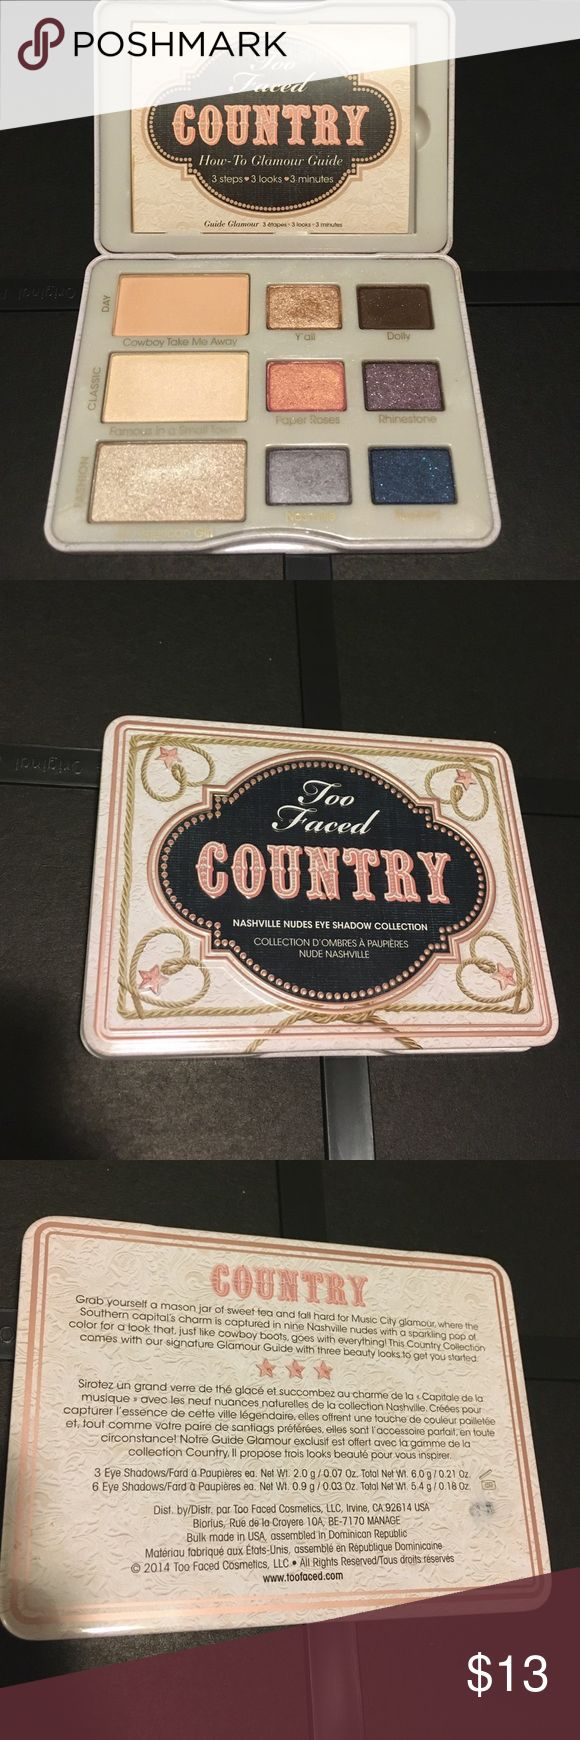 Too Faced Country pallet. Barely used! The Two Faced country pallet has three looks: day, night/fashion, and classic. The guide that comes with it shows you how to wear the shadows for each look.  Only a few of the shadows are used and have only been used a maximum of two times with a clean finger. No gross old applicators have touched the shadows! Too Faced Makeup Eyeshadow